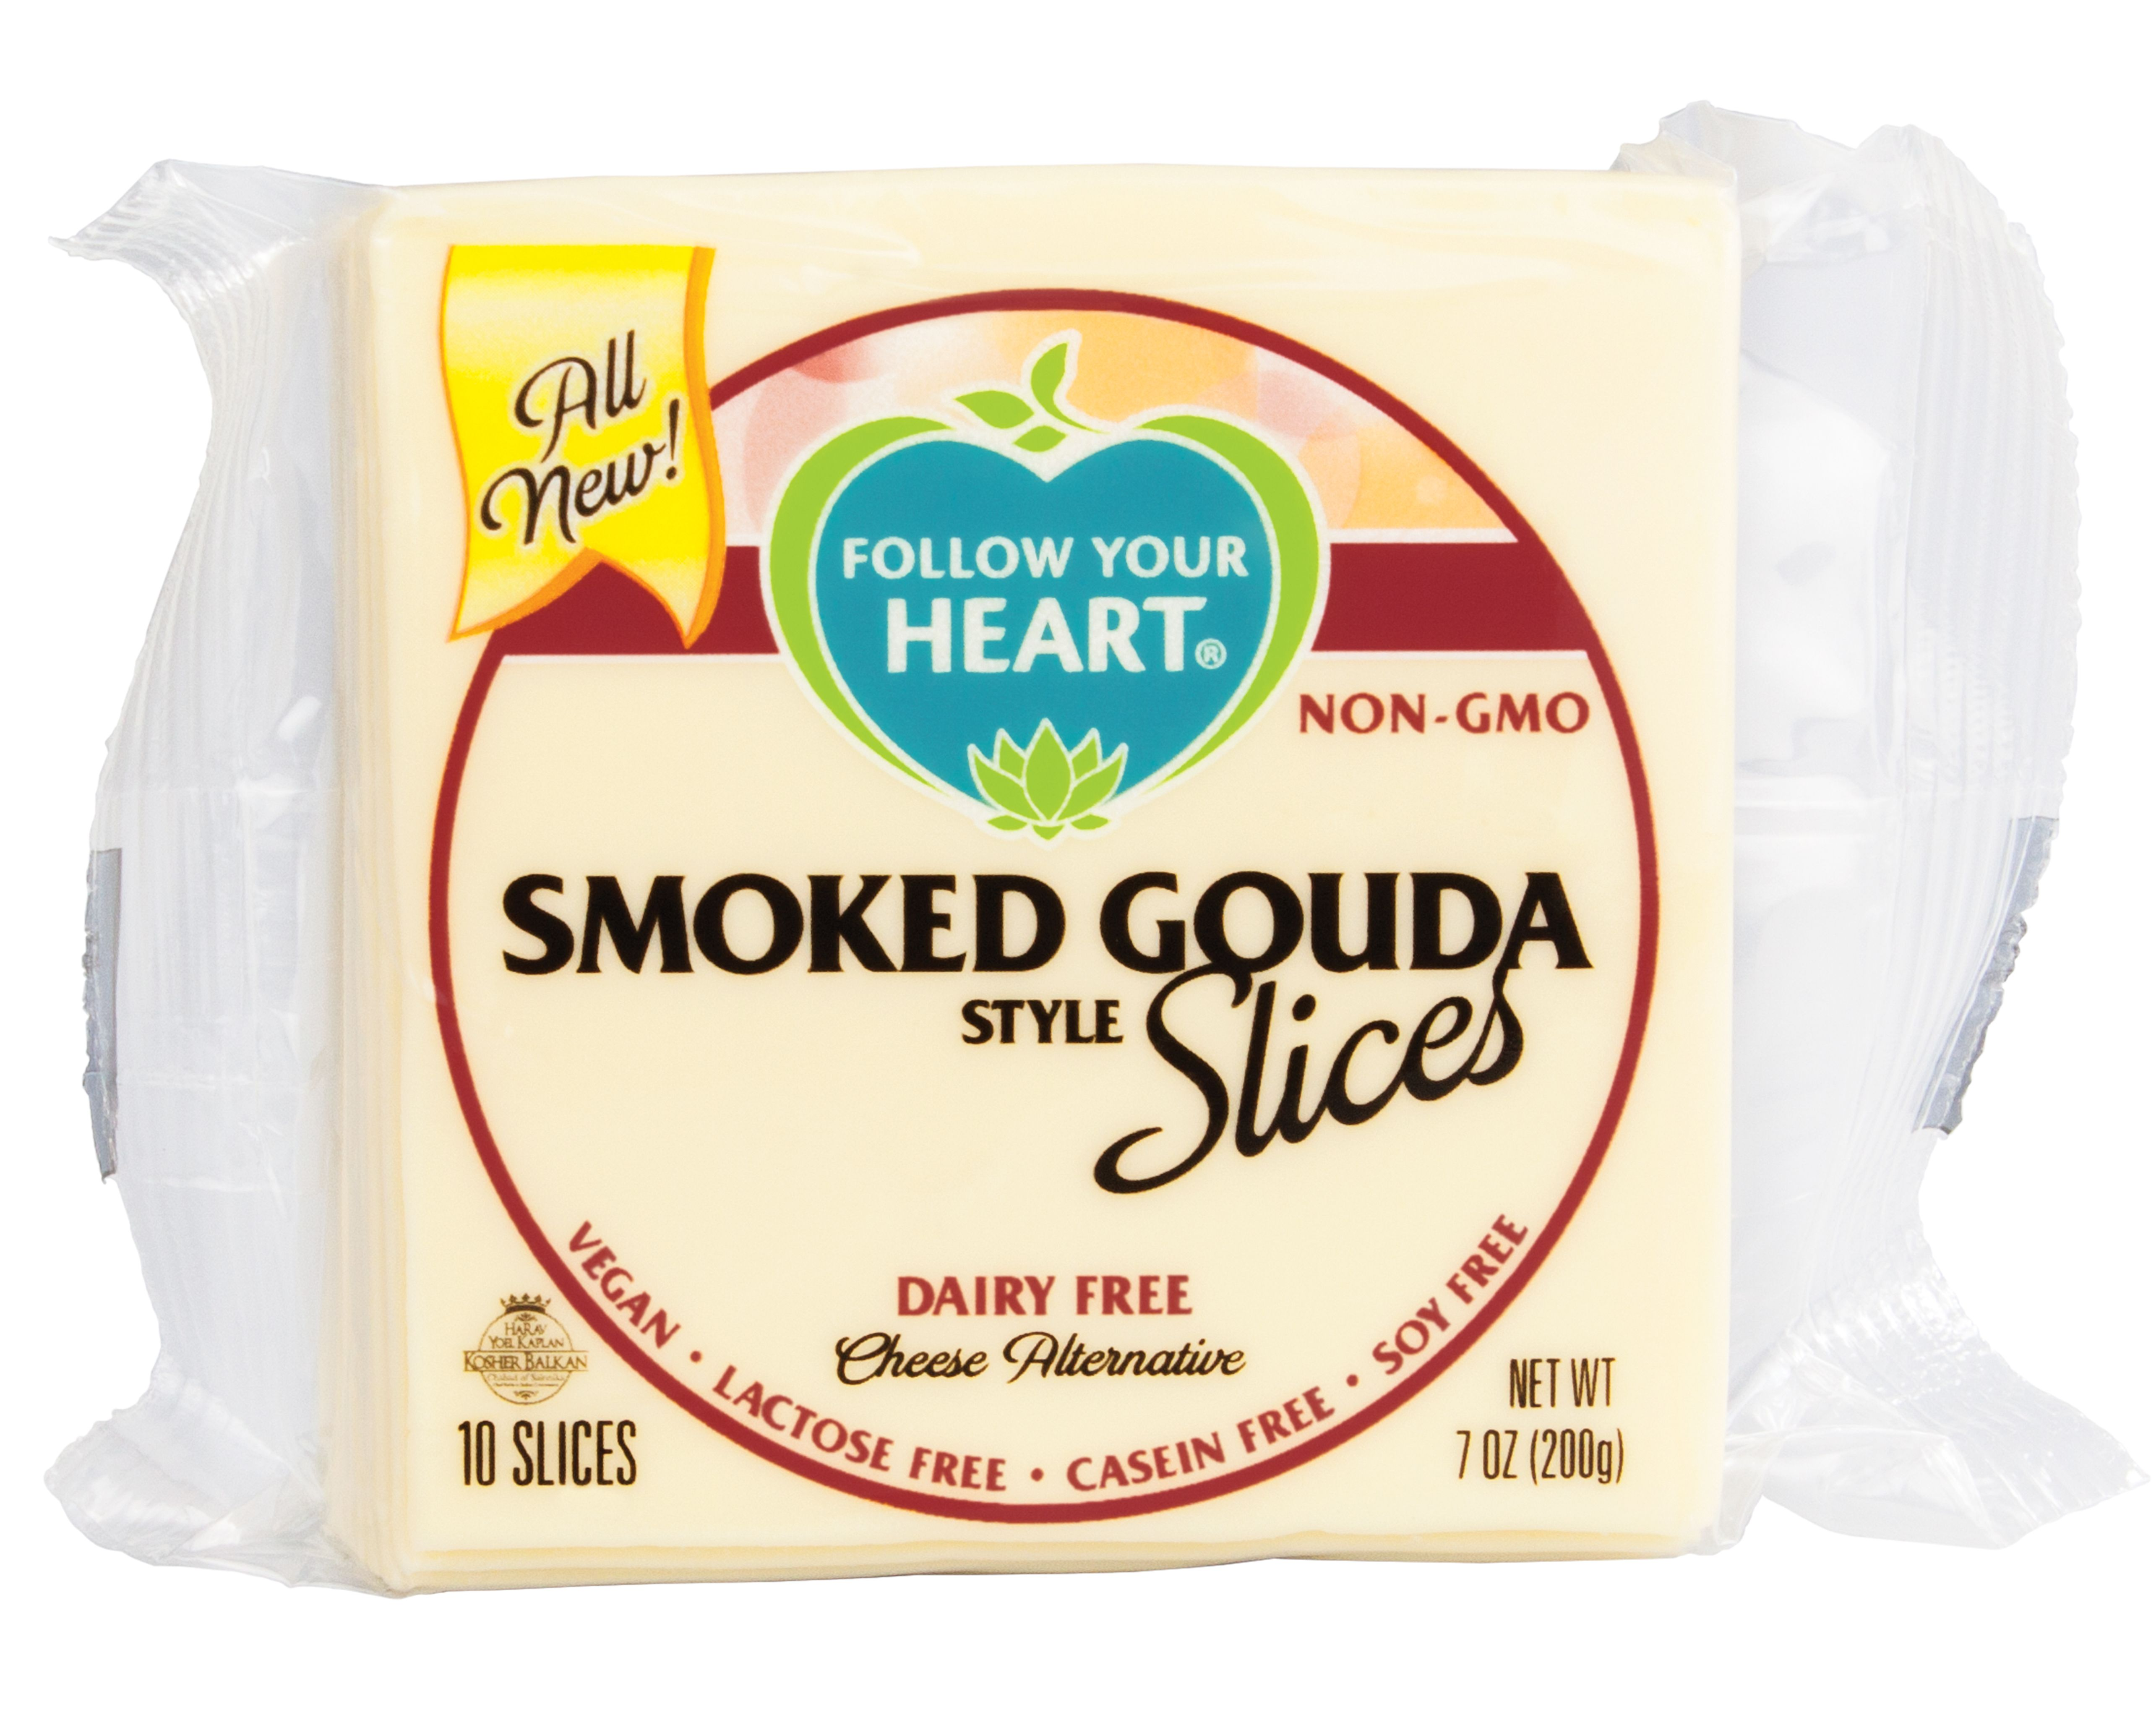 Dairy Free Smoked Gouda Just Tried It Last Night It Was Good I Thought It Was Good Enough To Eat Alone Vegan Cheese Dairy Free Cheese Cheese Alternatives